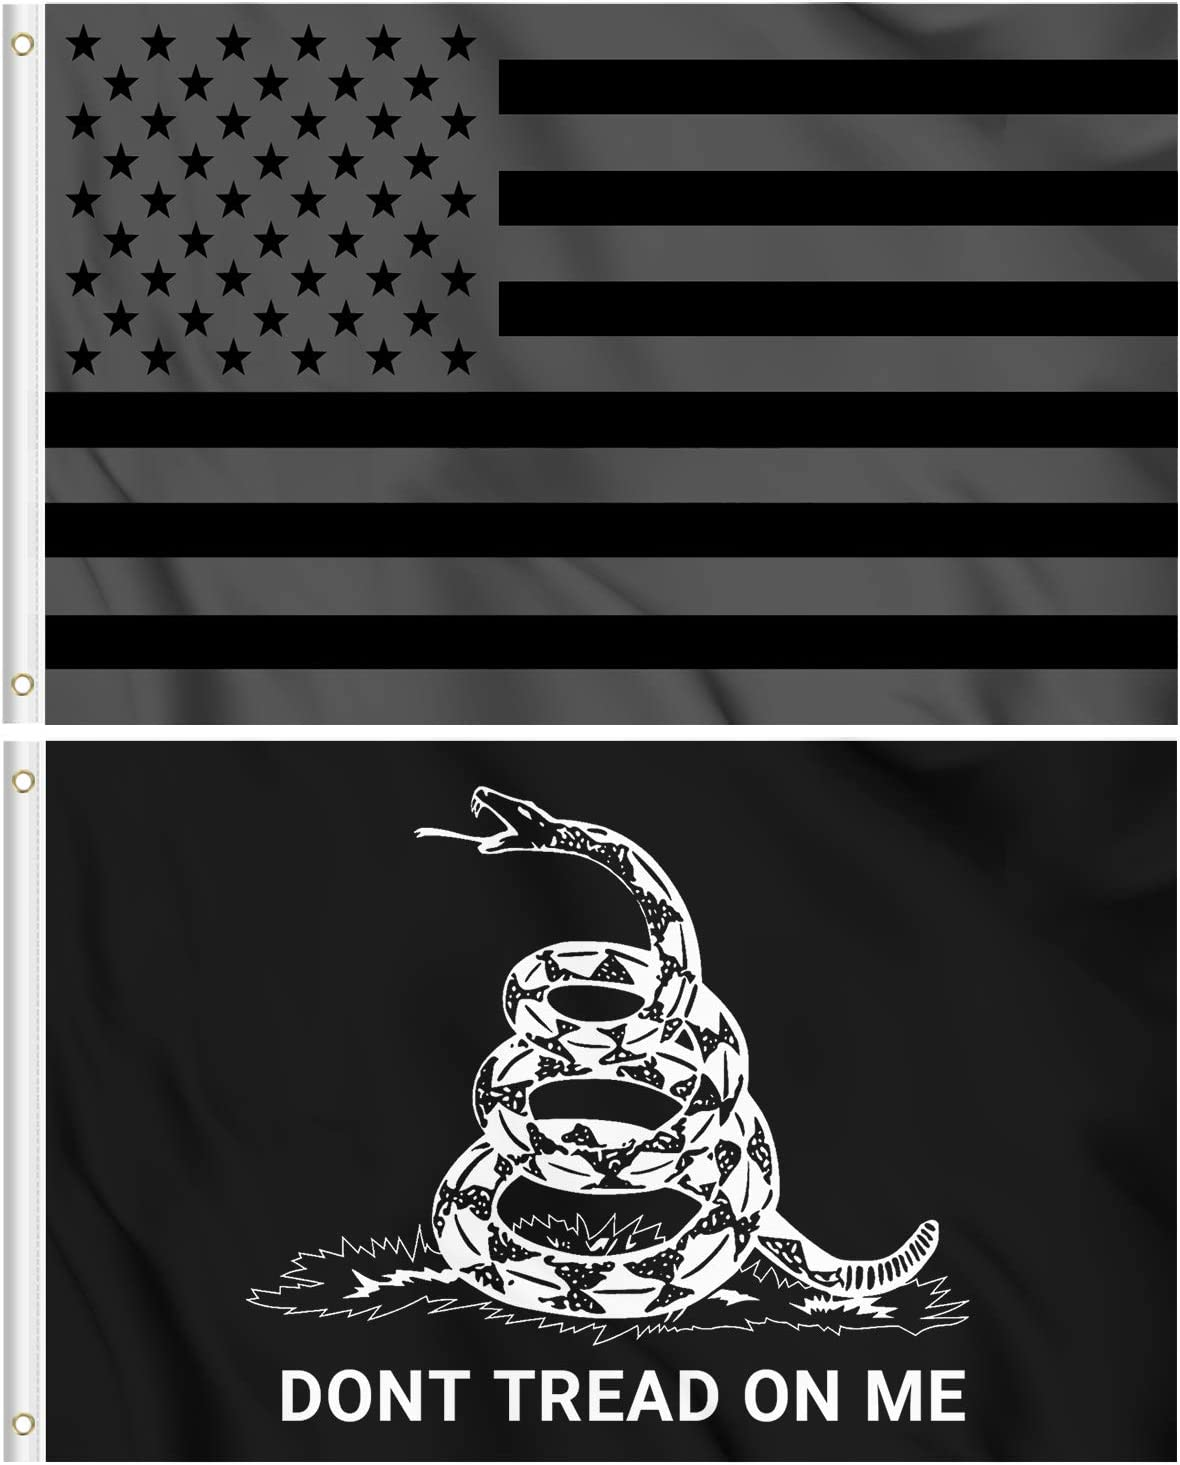 KENPMA All Black Out American Flag - Don't Tread On Me Gadsden Flag 3x5 ft 2-Pack Wall Banners House Porch Yard Lawn Decorative Sign US Outdoor Flag with Grommets - Printed Polyester Fade Proof